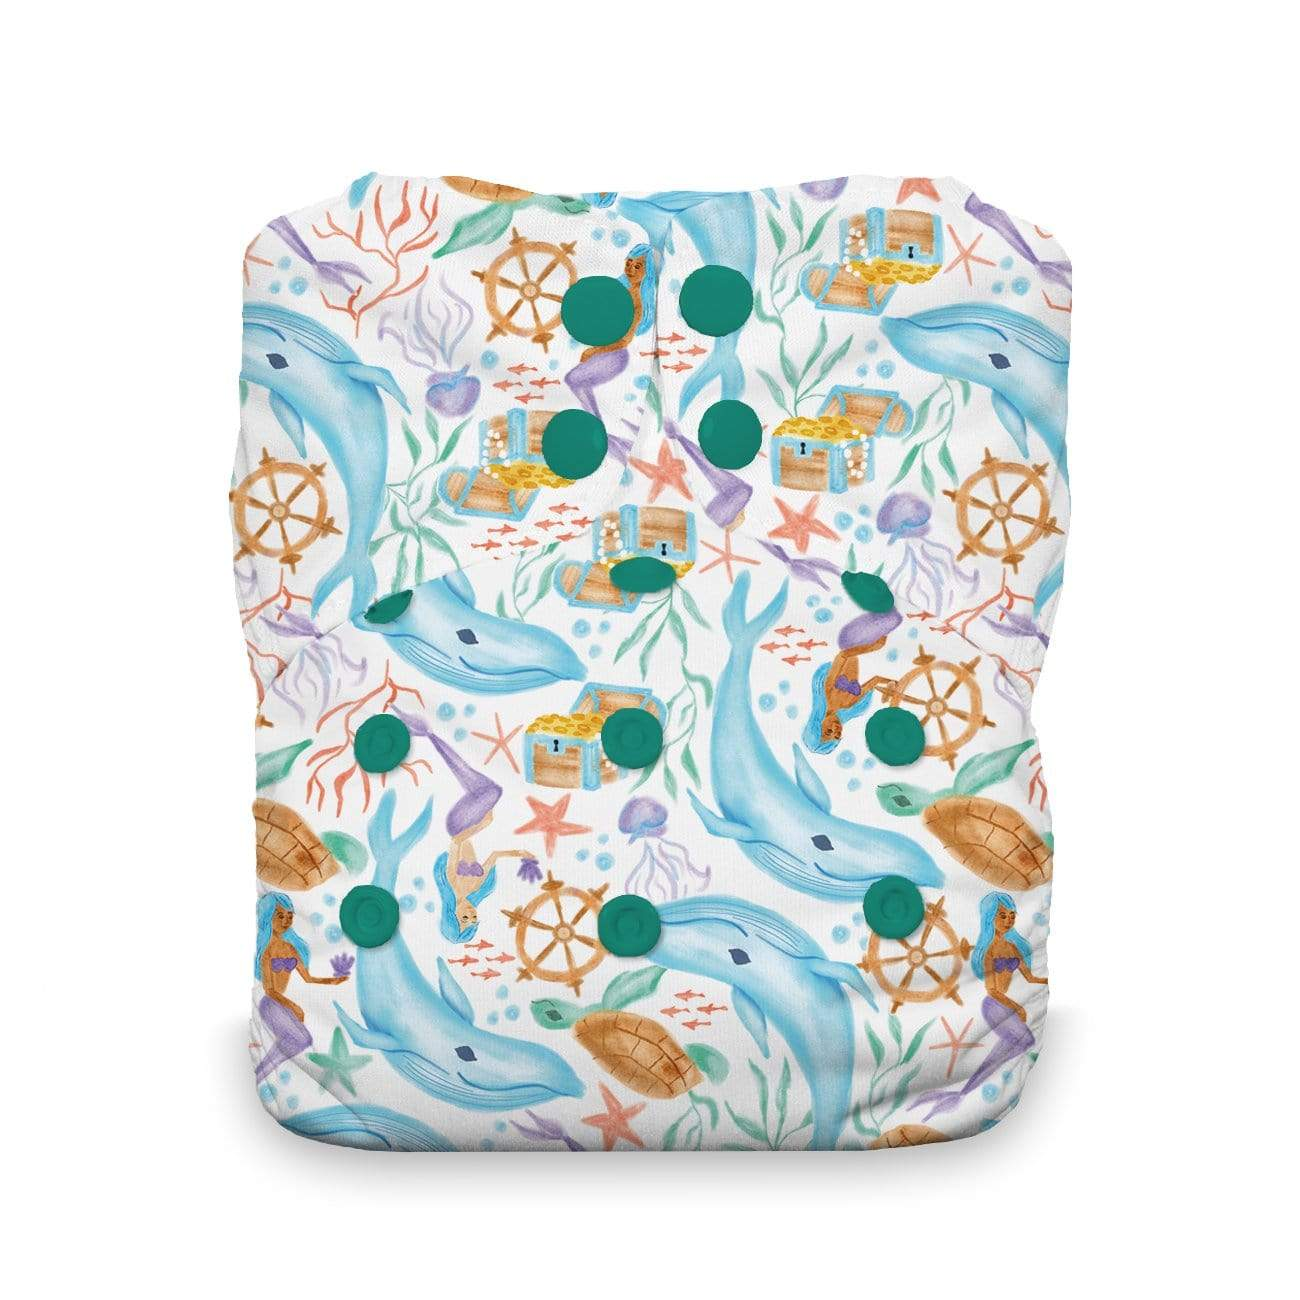 Thirsties Natural One Size Snap All In One Diaper - Mermaid Lagoon